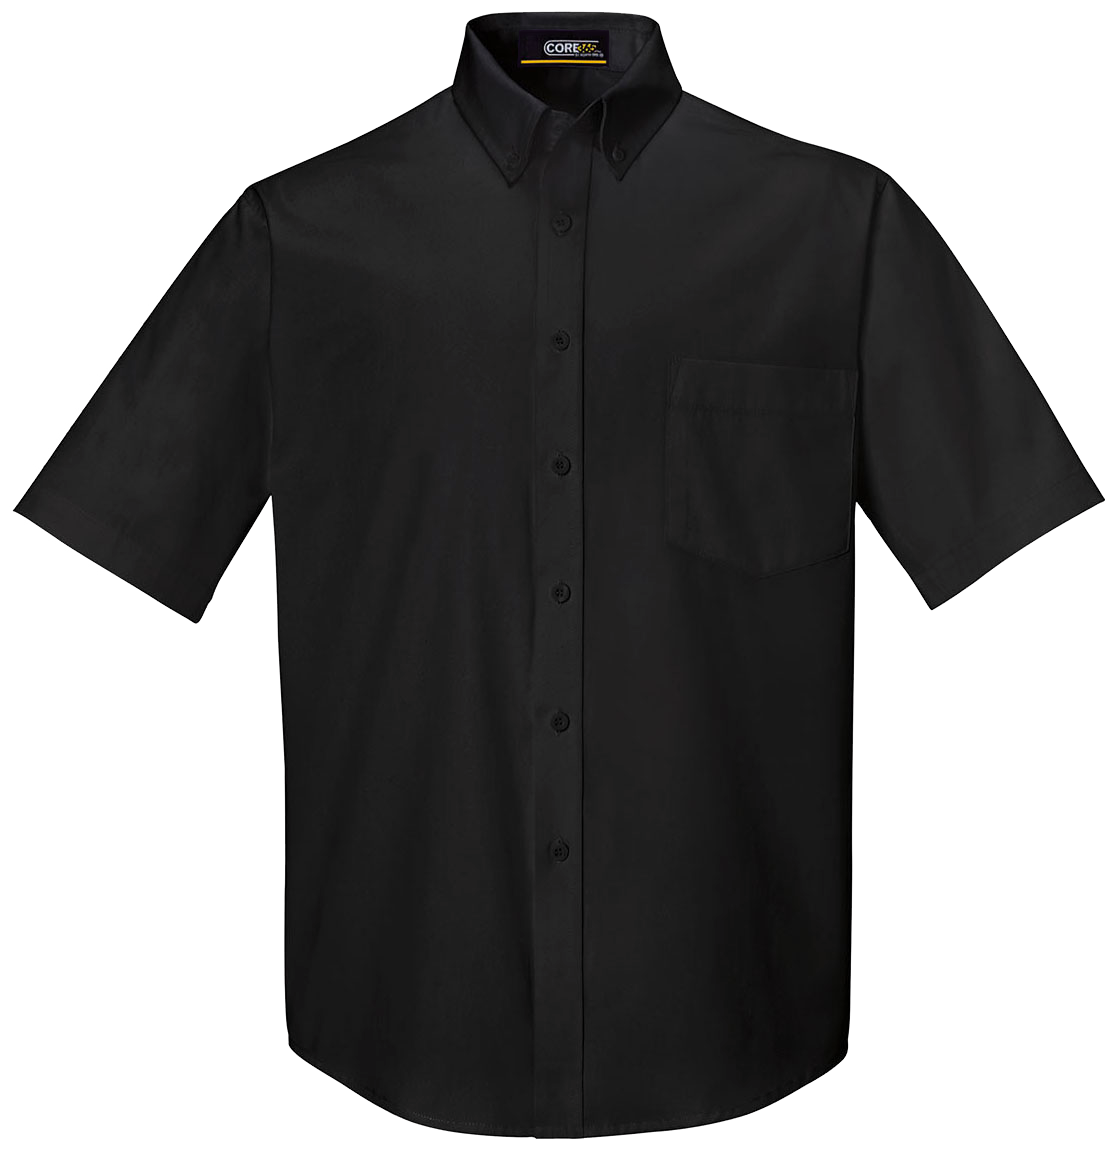 Picture of Core365 Tall Men'S Short Sleeve Twill Shirts